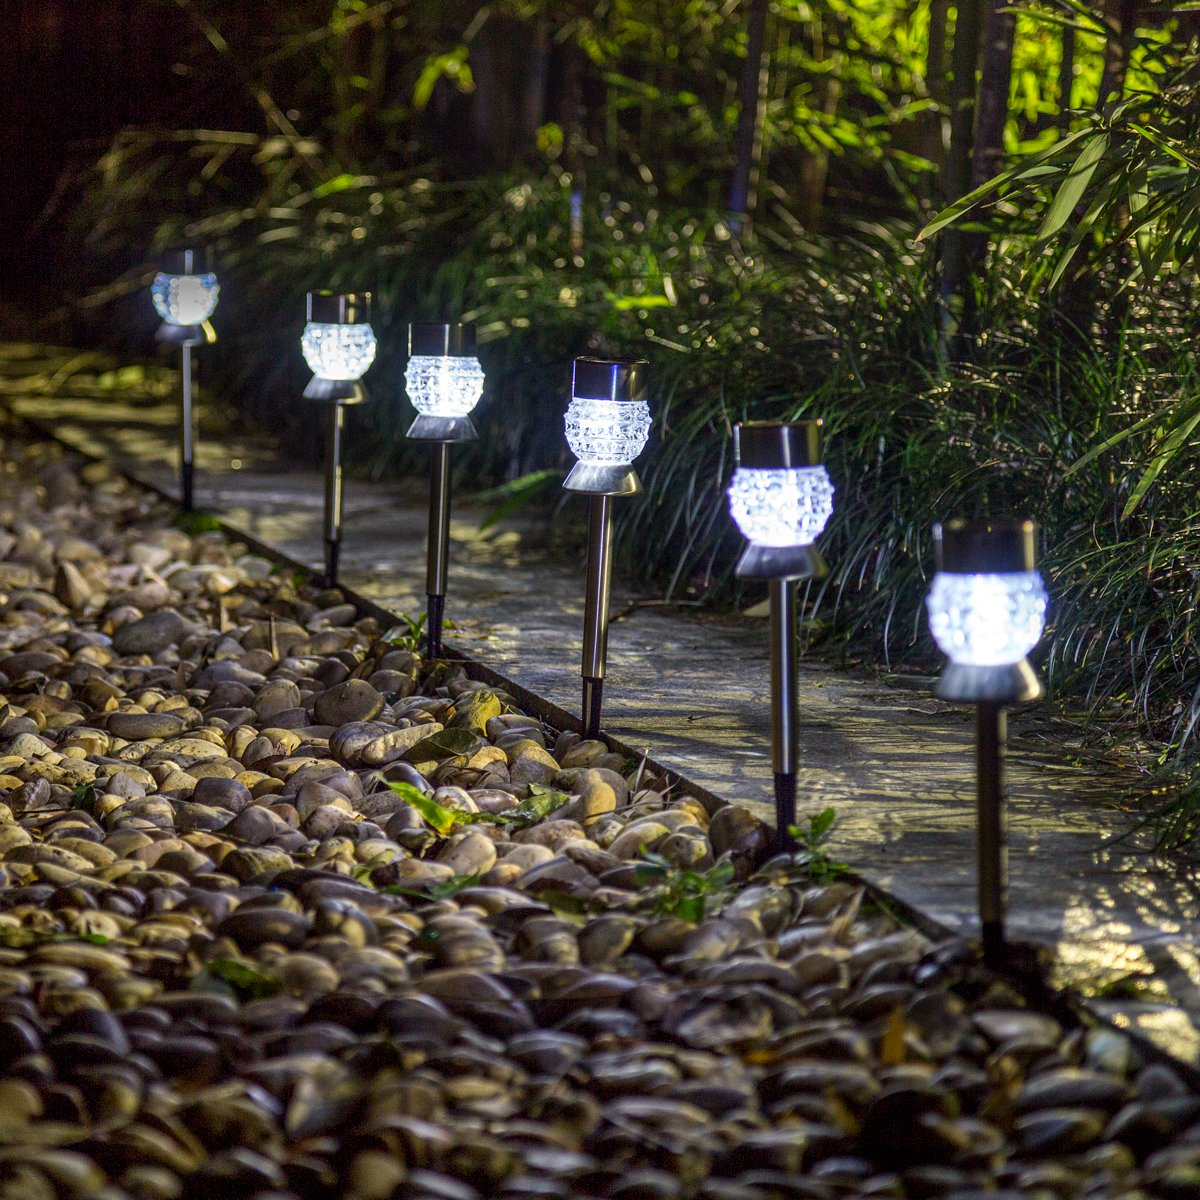 Driveway Lights Guide Outdoor Lighting Ideas Tips: 8 Best Solar Garden Lights For Your Home: Buying Guide